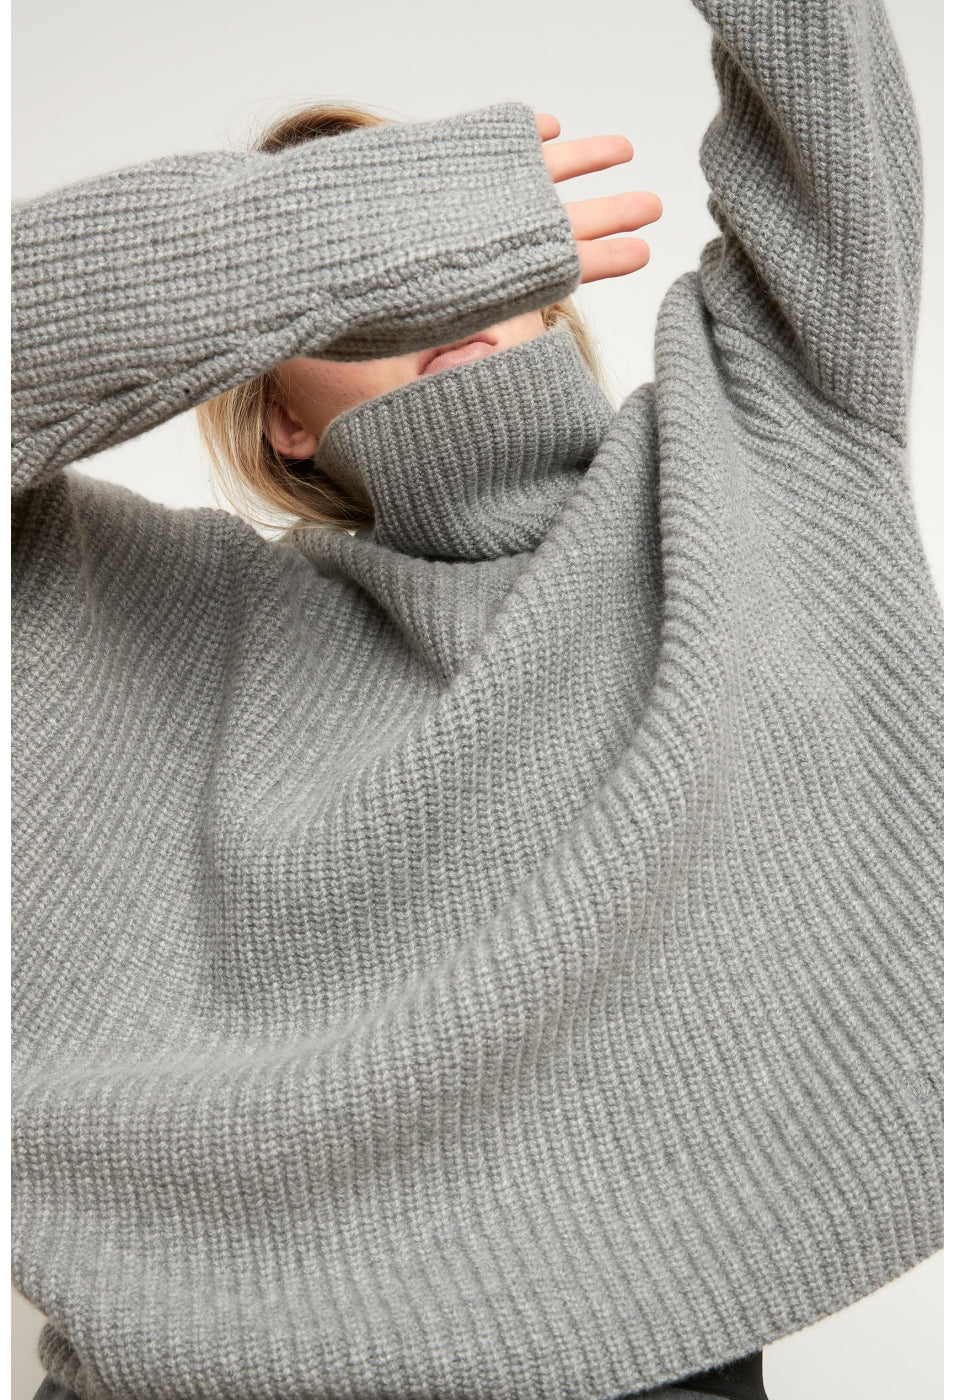 ROSCANA CASHMERE SWEATER IN BLACK BY LOULOU STUDIO